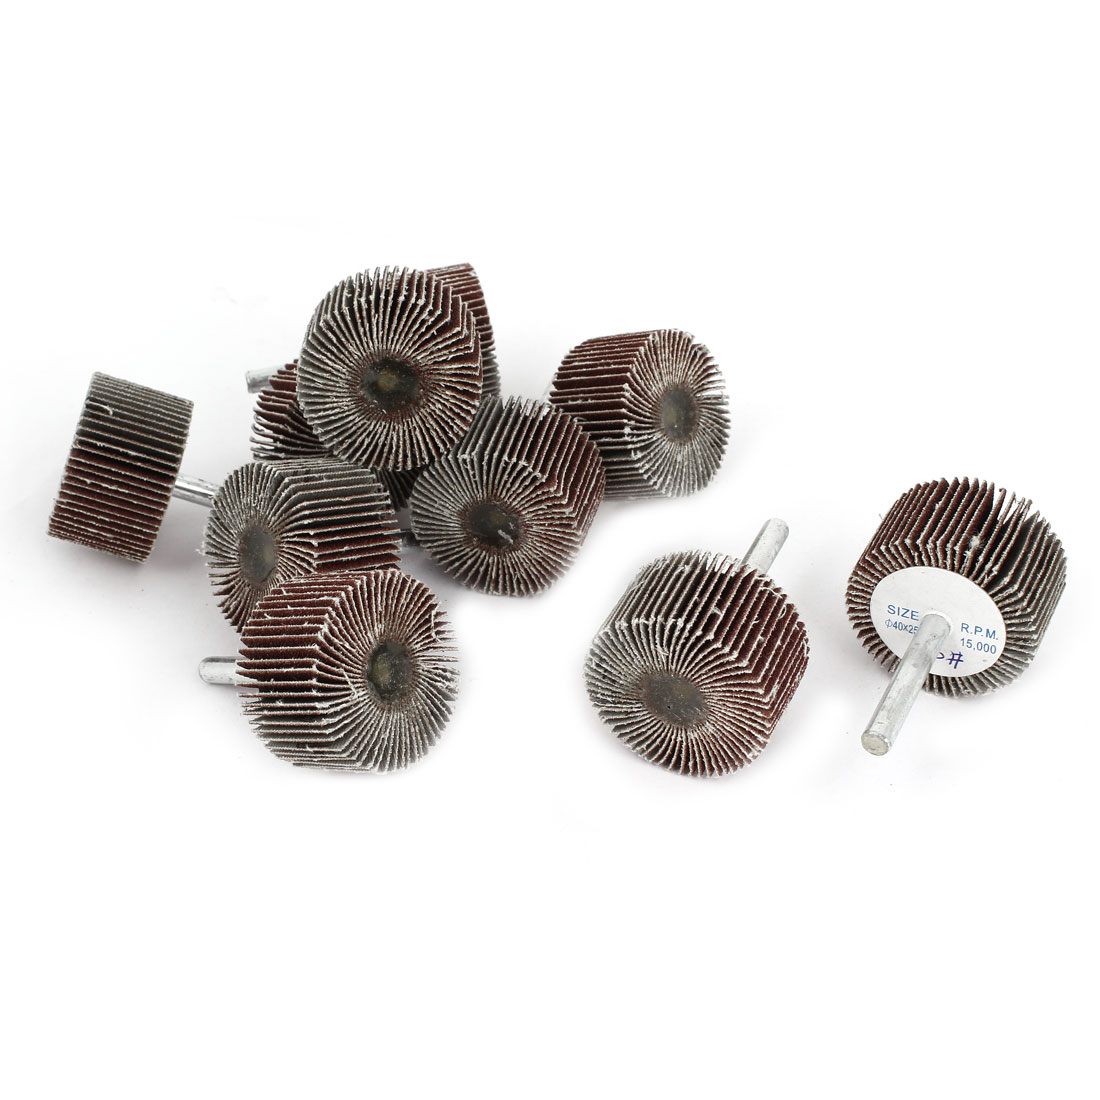 10 Pieces 120 Grit 40x25x6mm Cylindrical Abrasives Grinding Flap Wheel Discs